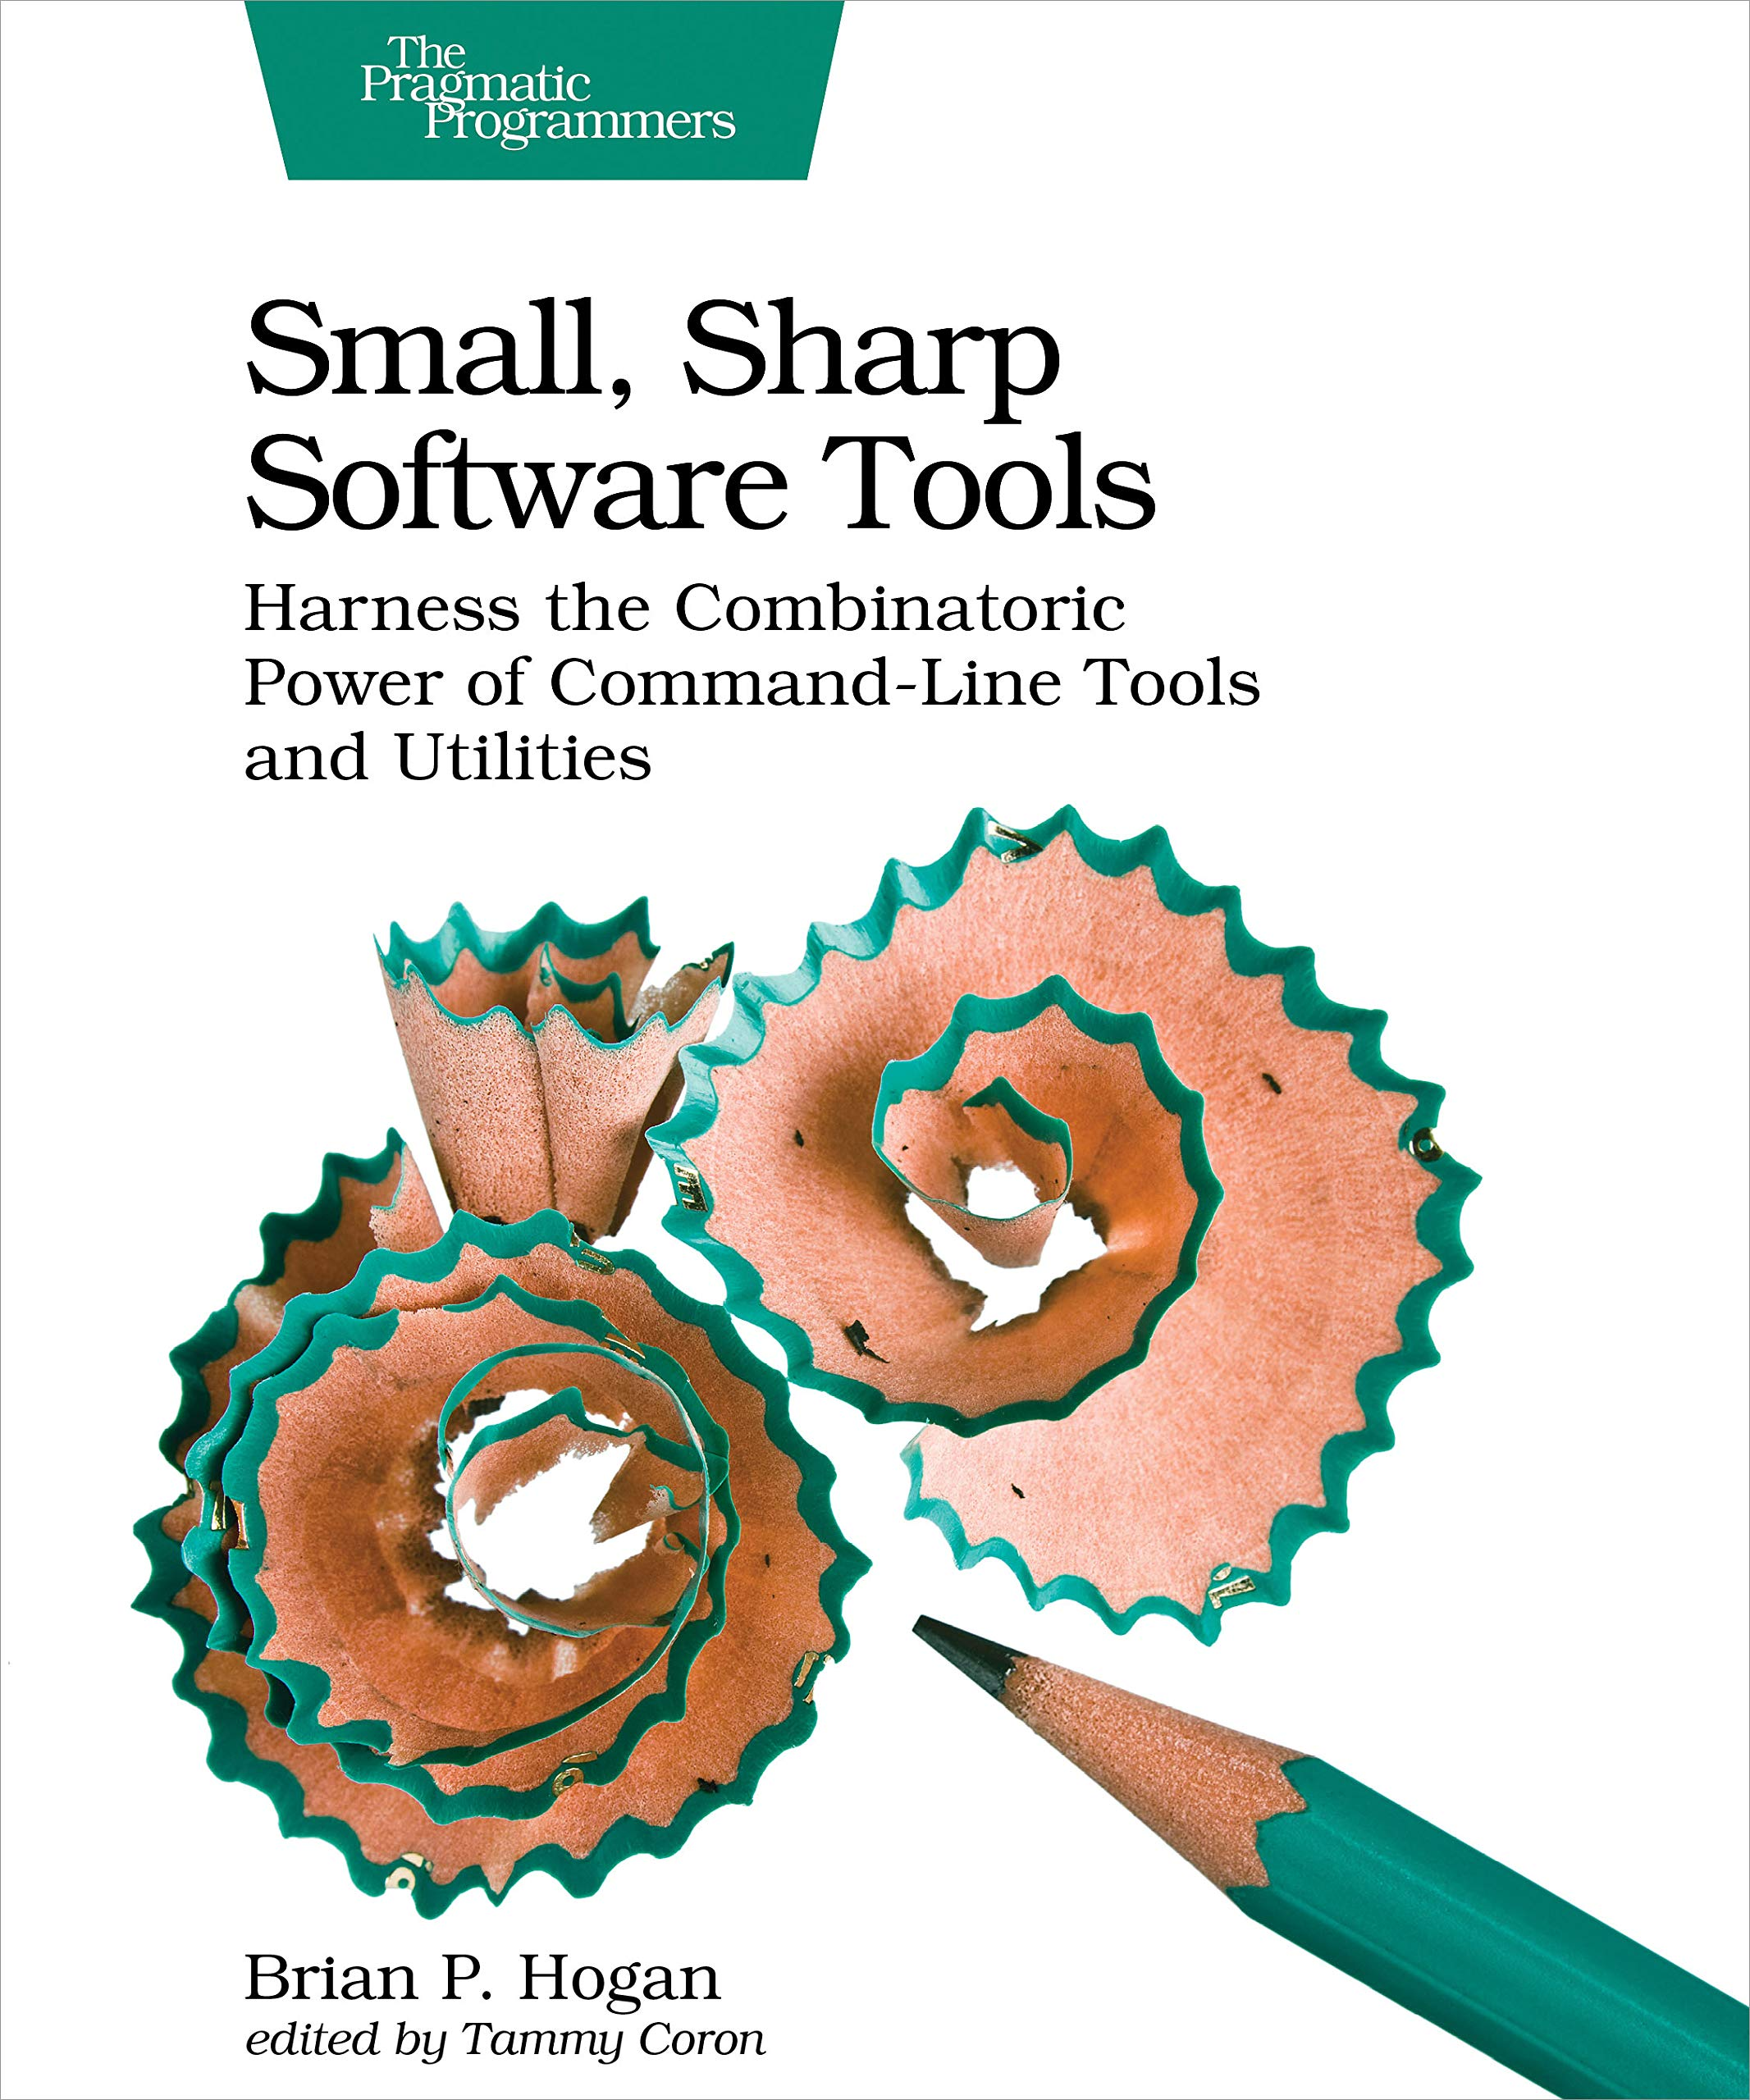 Small, Sharp Software Tools: Harness the Combinatoric Power